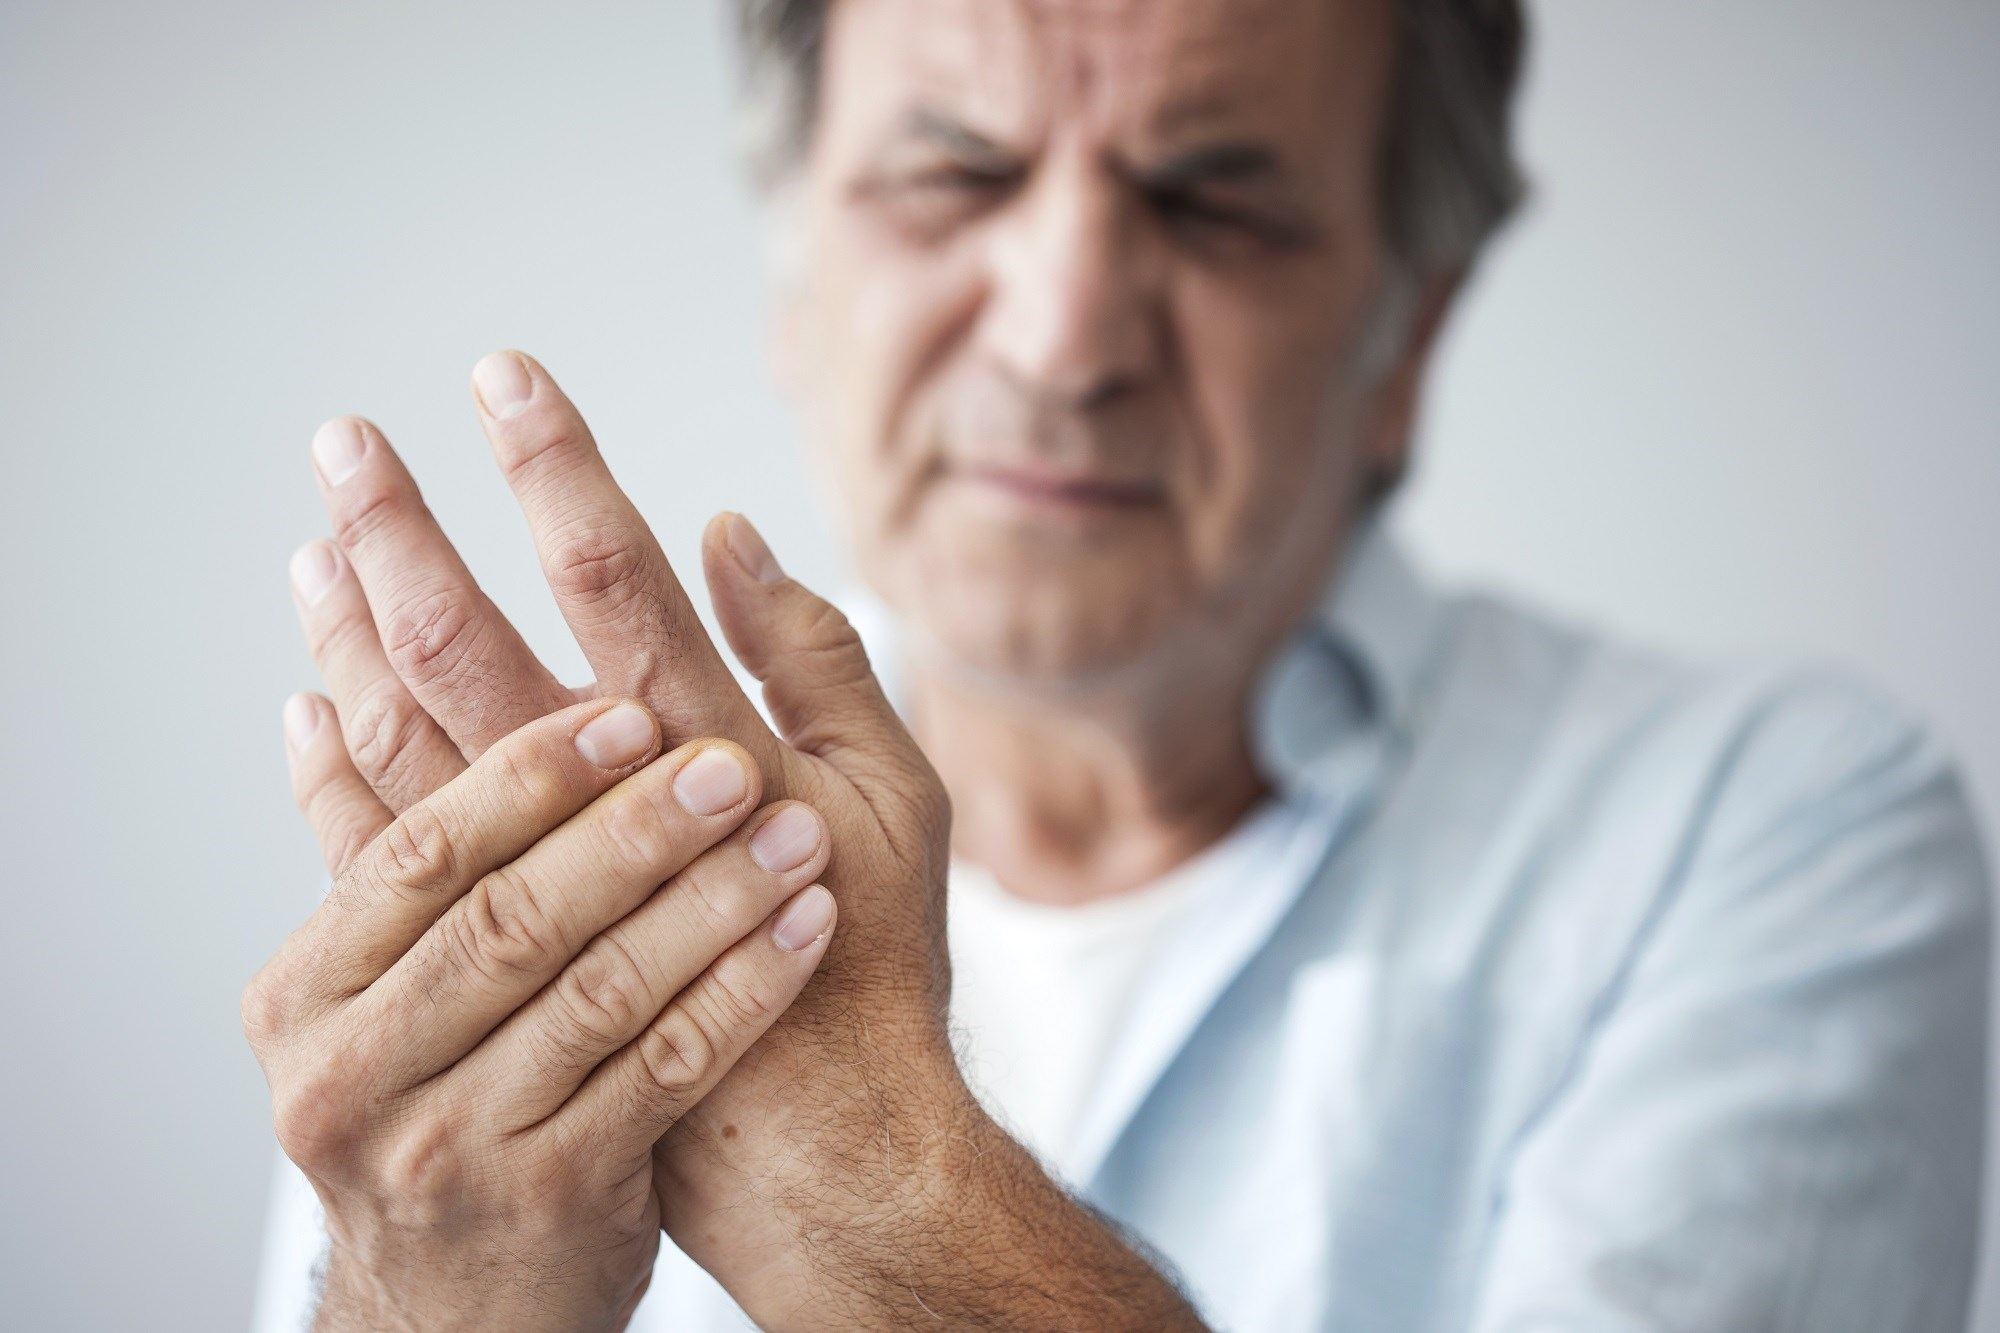 Rheumatoid Arthritis in Men: Psychological Effects and Gaps in Self-Management